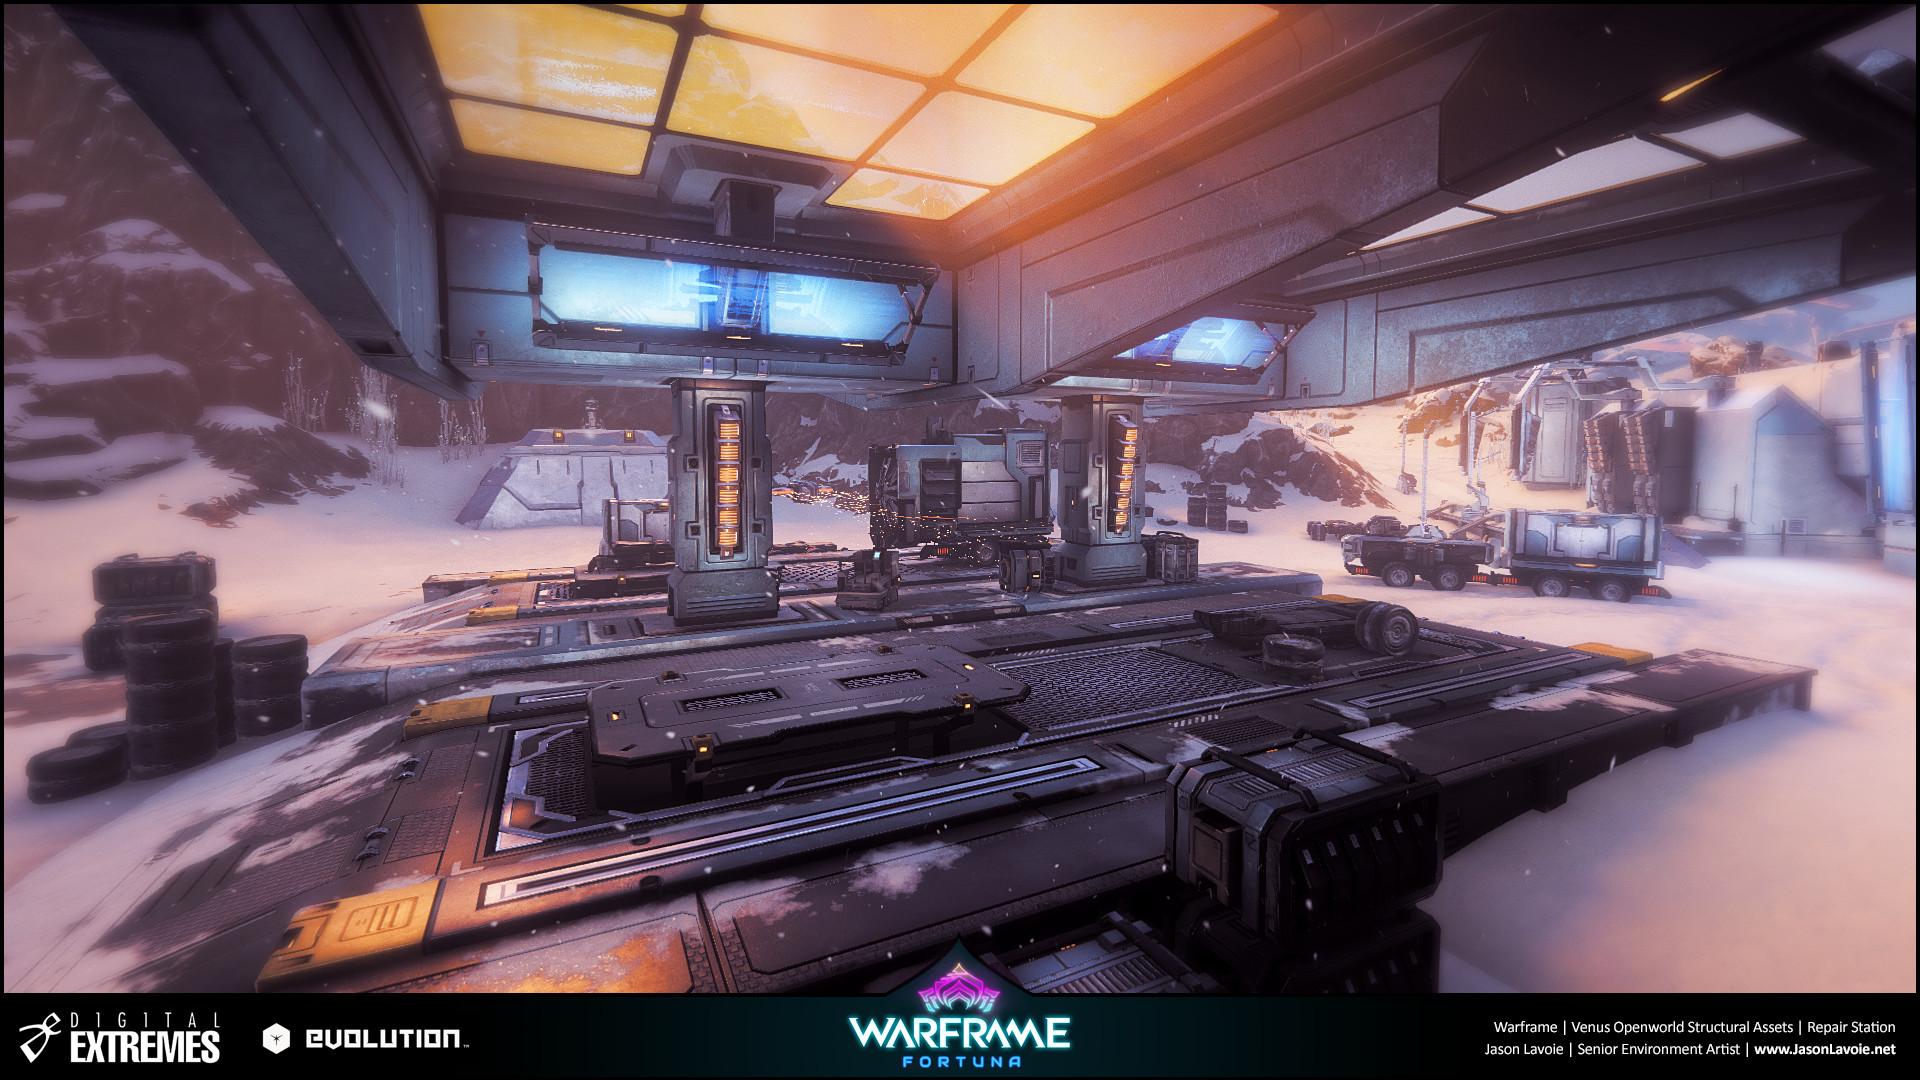 Jason lavoie jasonlavoie warframefortuna repairstation ingame 02